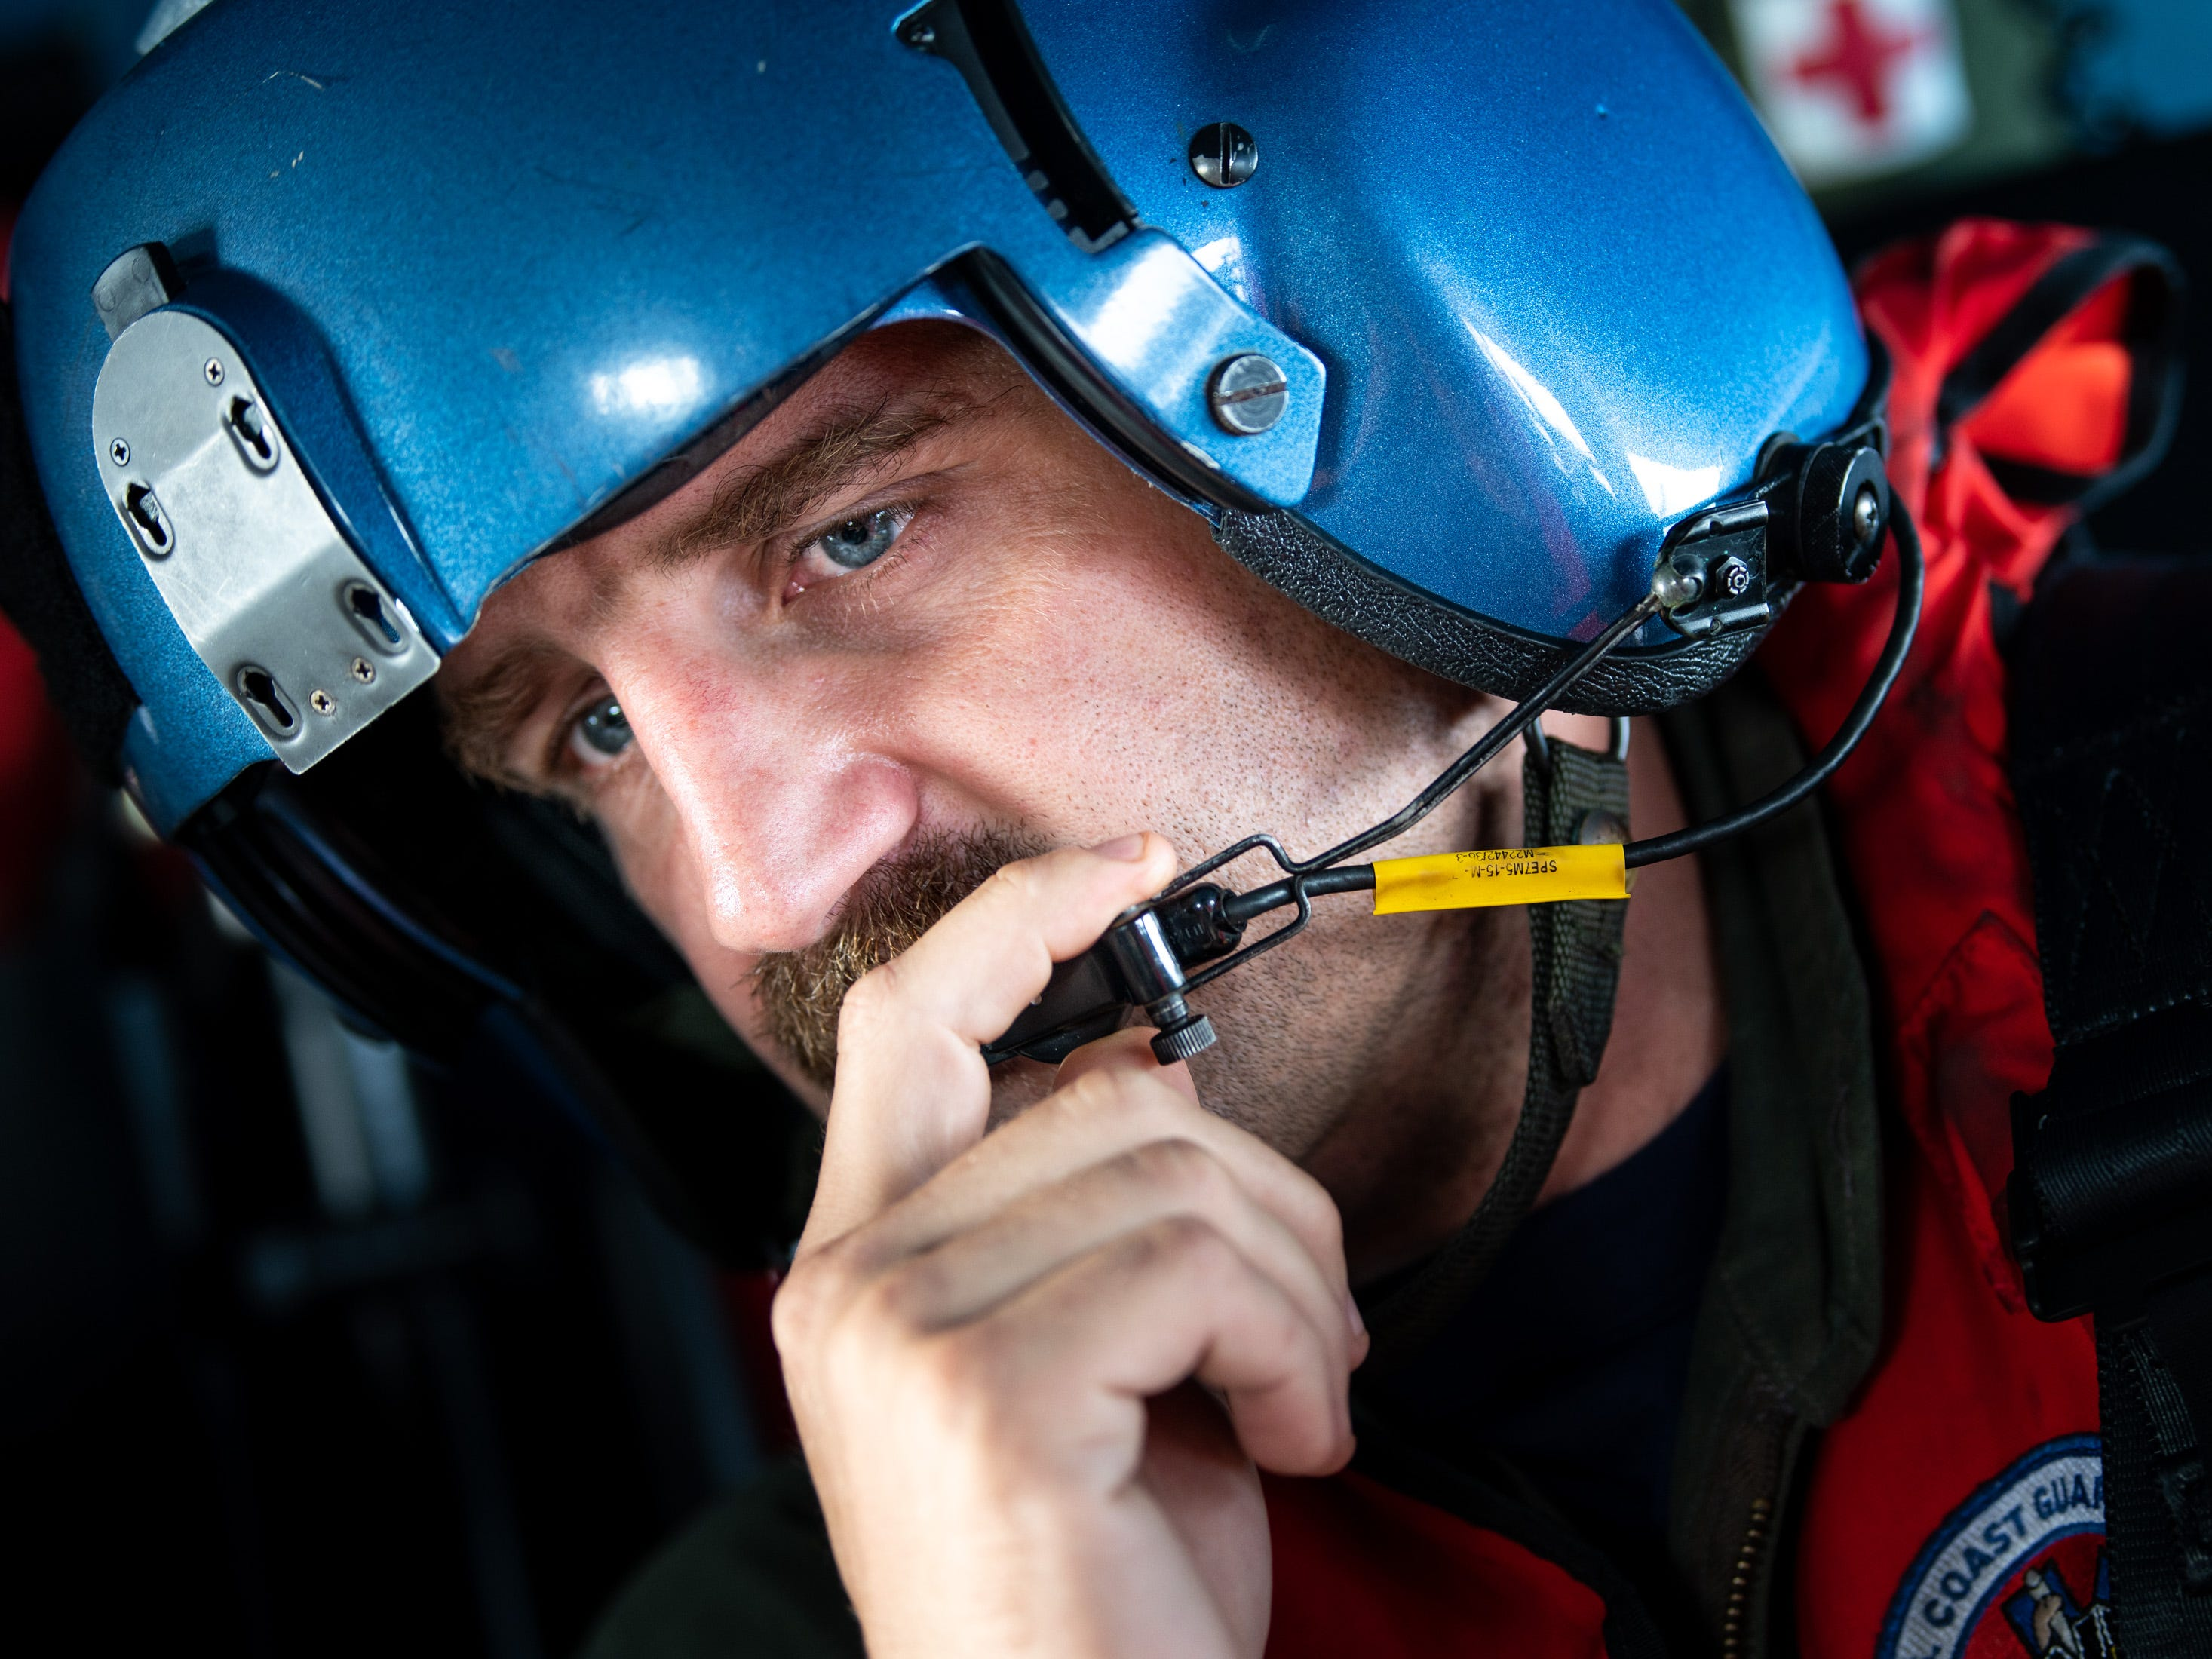 Coast Guard Rescue Swimmer AST Scott Garren speaks to other crew members through his microphone as their helicopter is diverted from flood relief efforts, Monday, Sept. 17, 2018. The crew was dispatched to the Carnival Pride cruise ship, which was about 100 miles off the North Carolina shore, to medevac a 70-year-old woman who had a heart attack.